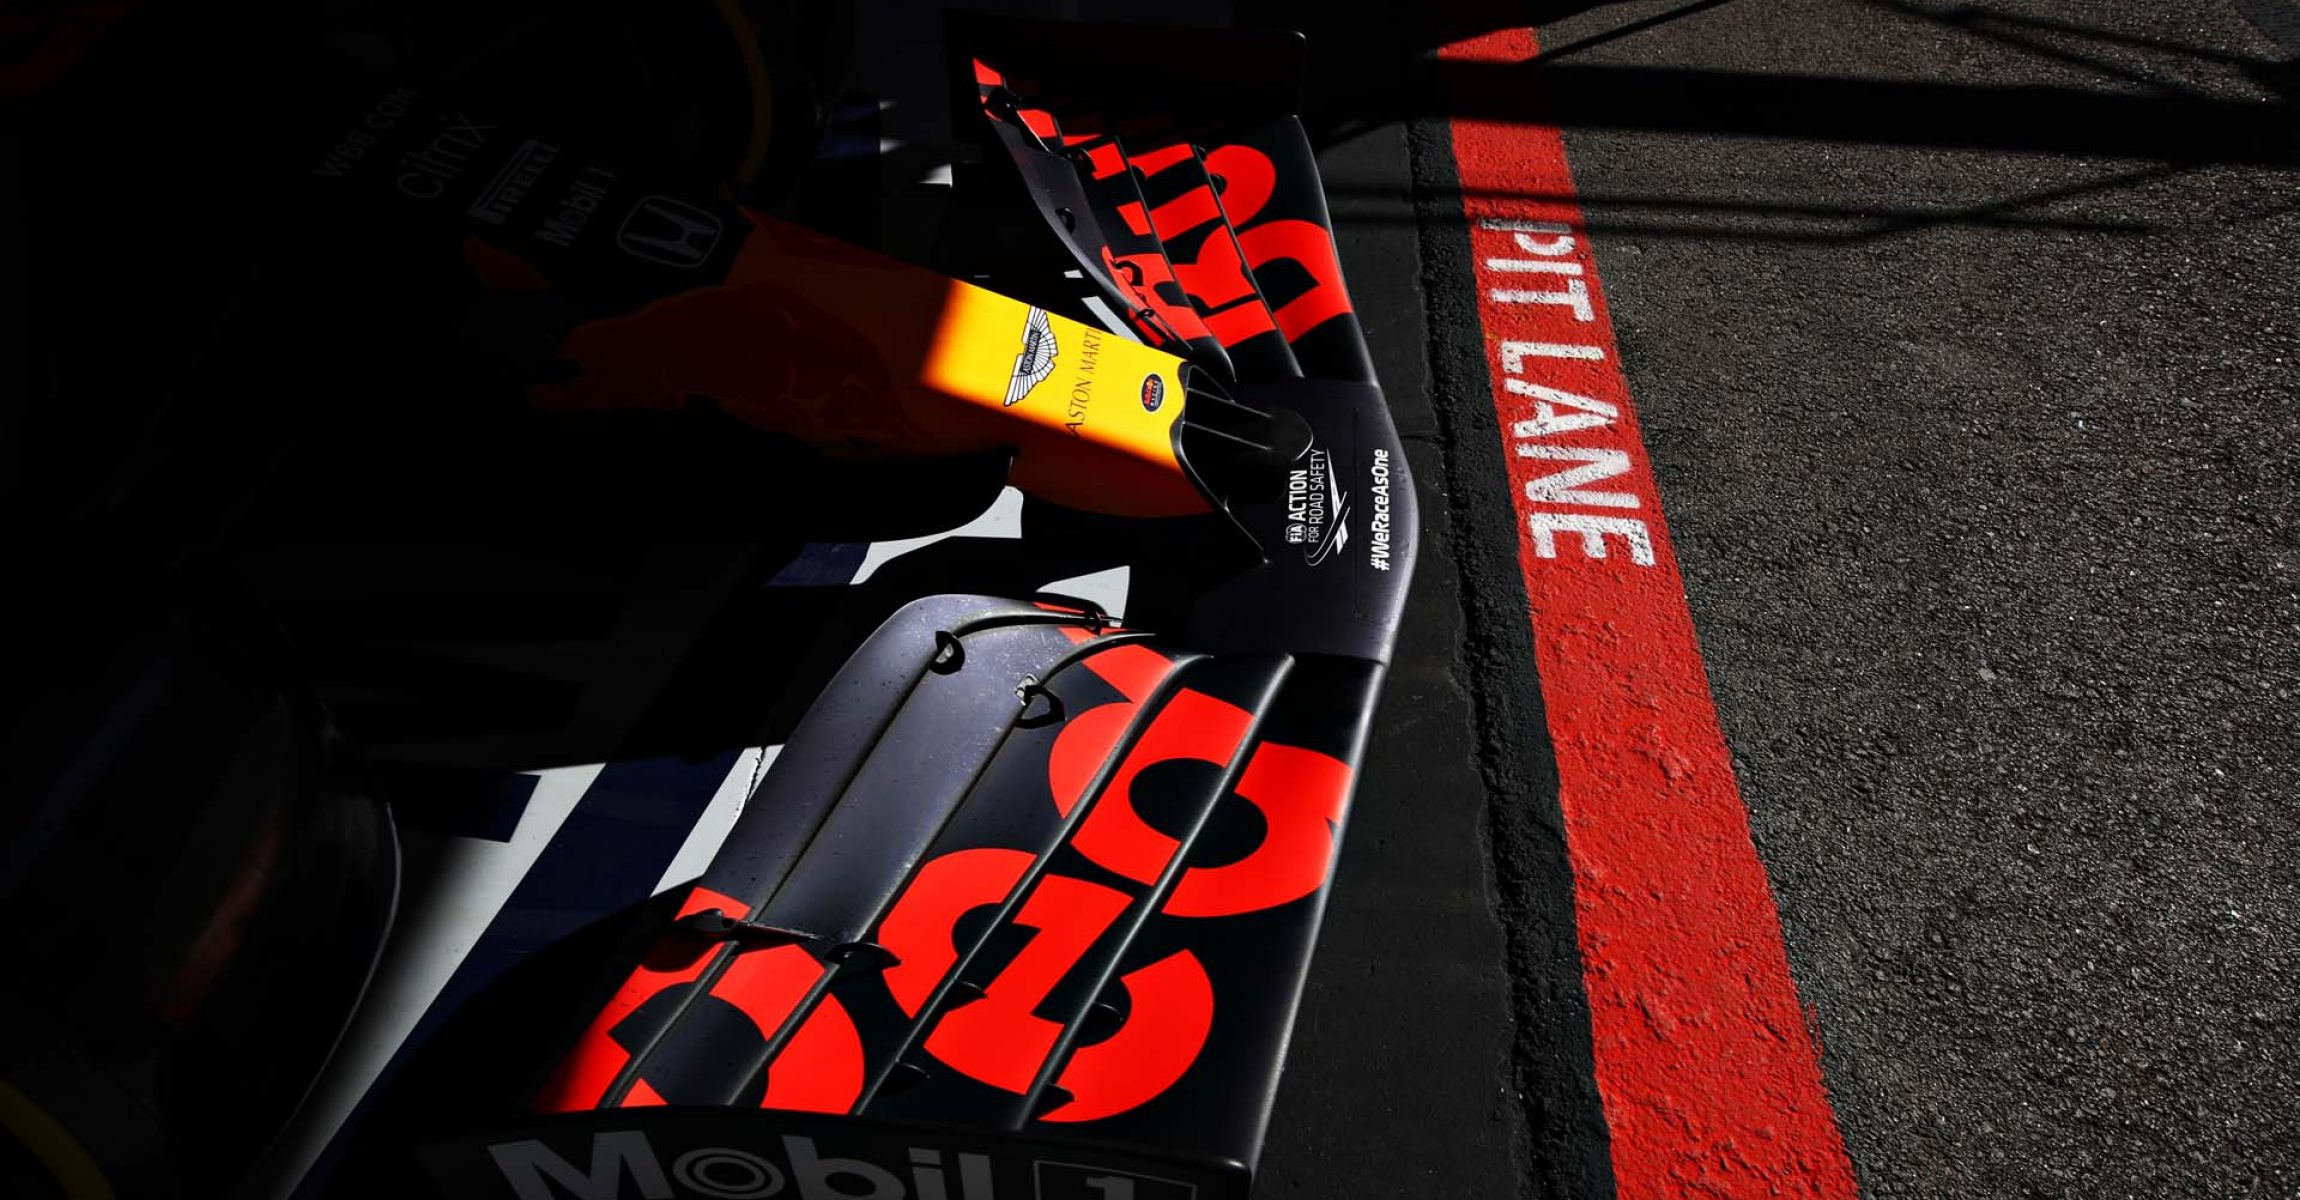 PORTIMAO, PORTUGAL - OCTOBER 23: A detail shot of the front wing of the Red Bull Racing RB16 during practice ahead of the F1 Grand Prix of Portugal at Autodromo Internacional do Algarve on October 23, 2020 in Portimao, Portugal. (Photo by Mark Thompson/Getty Images)